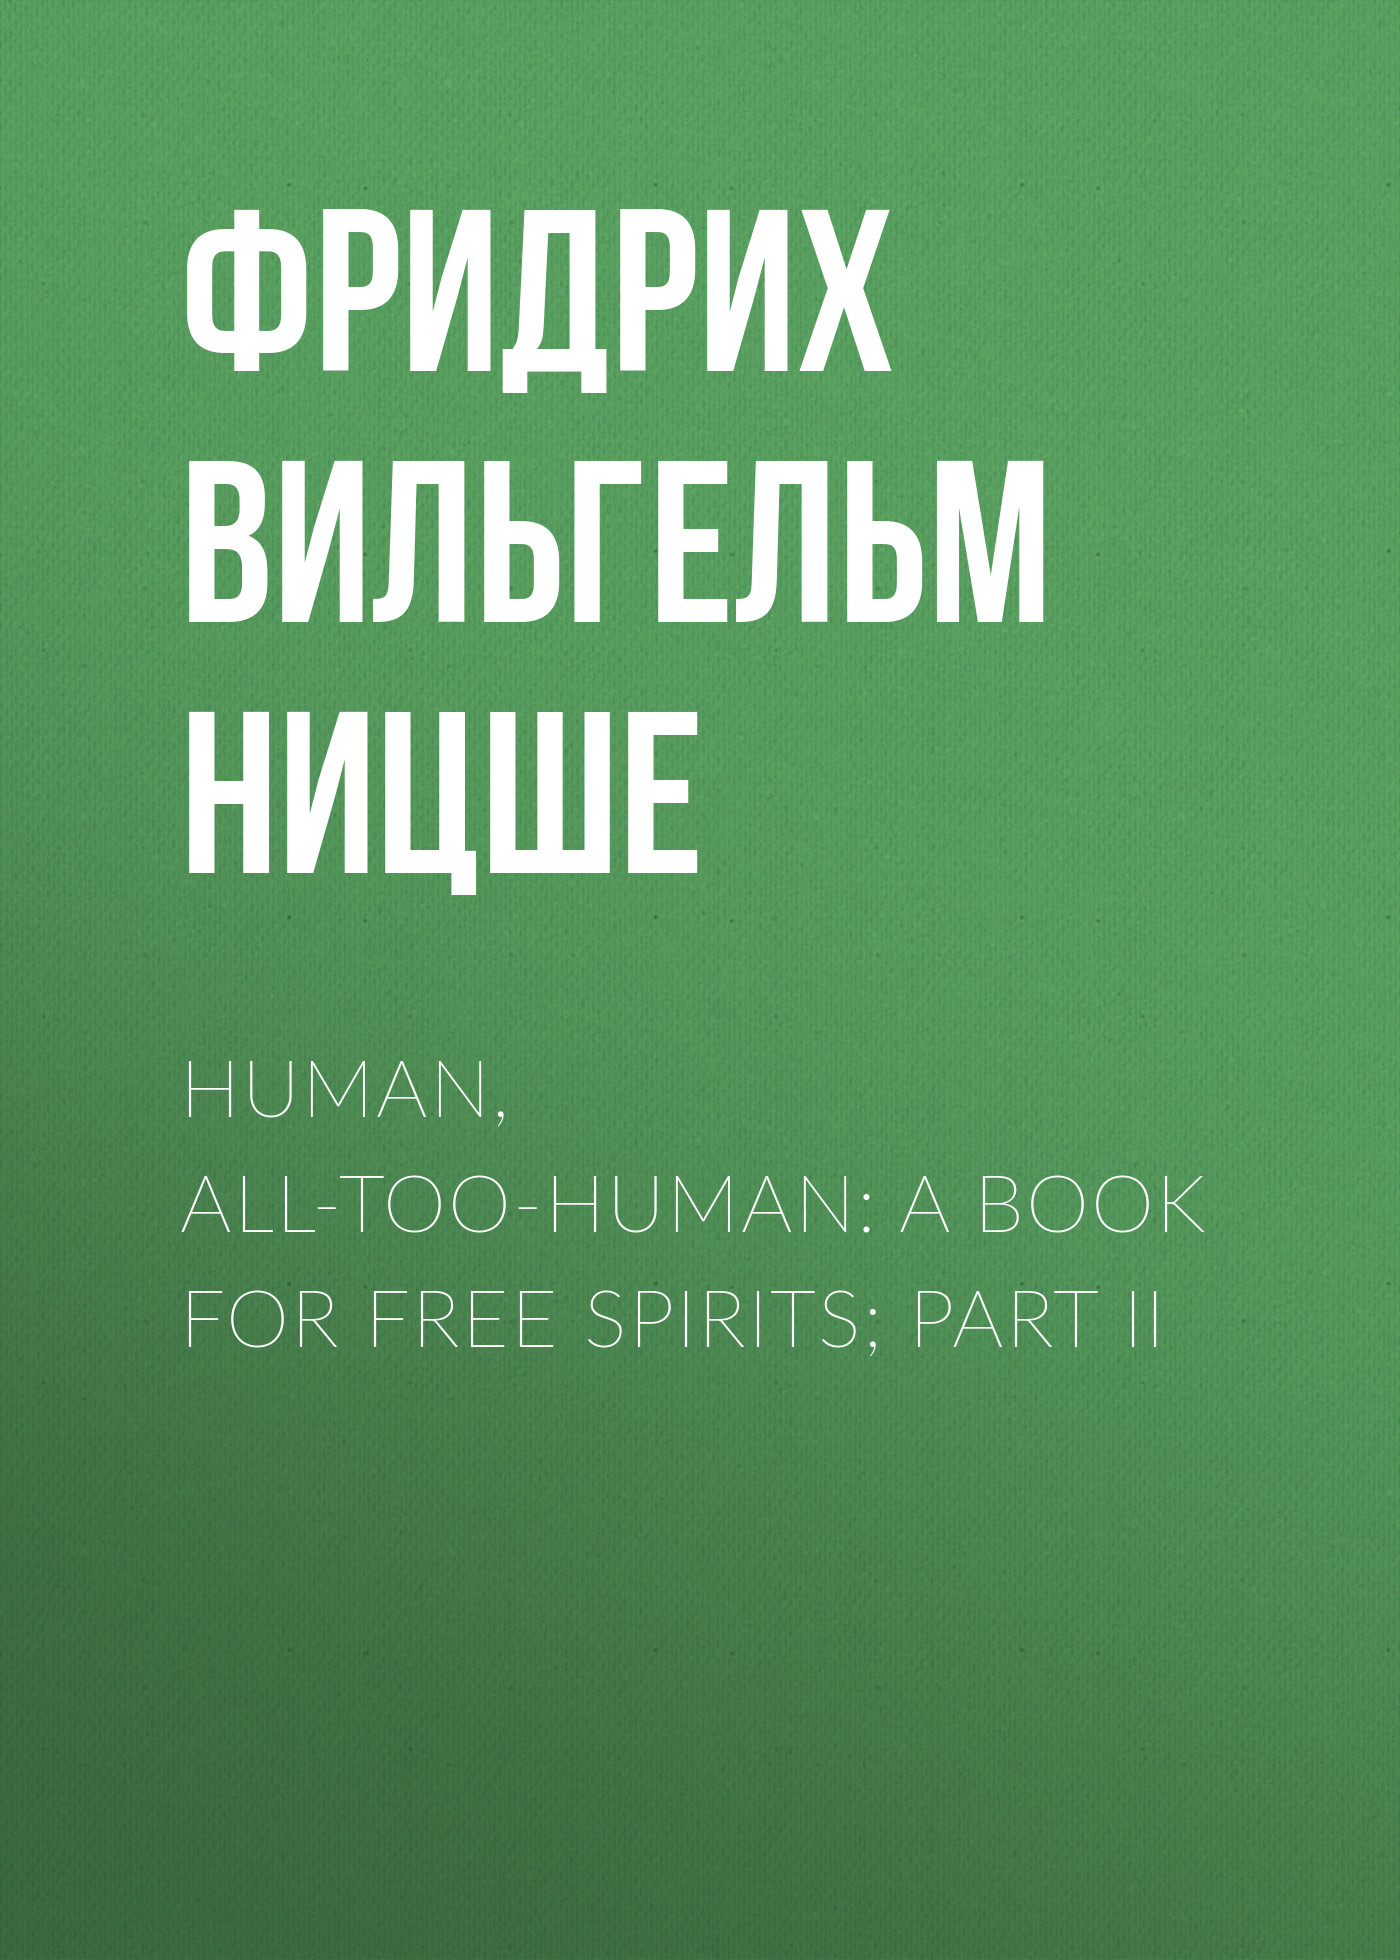 Фридрих Вильгельм Ницше Human, All-Too-Human: A Book For Free Spirits; Part II free shipping 6900 61900 10 22 6mm si3n4 full ceramic bearing 10x22x6mm for bicycle part